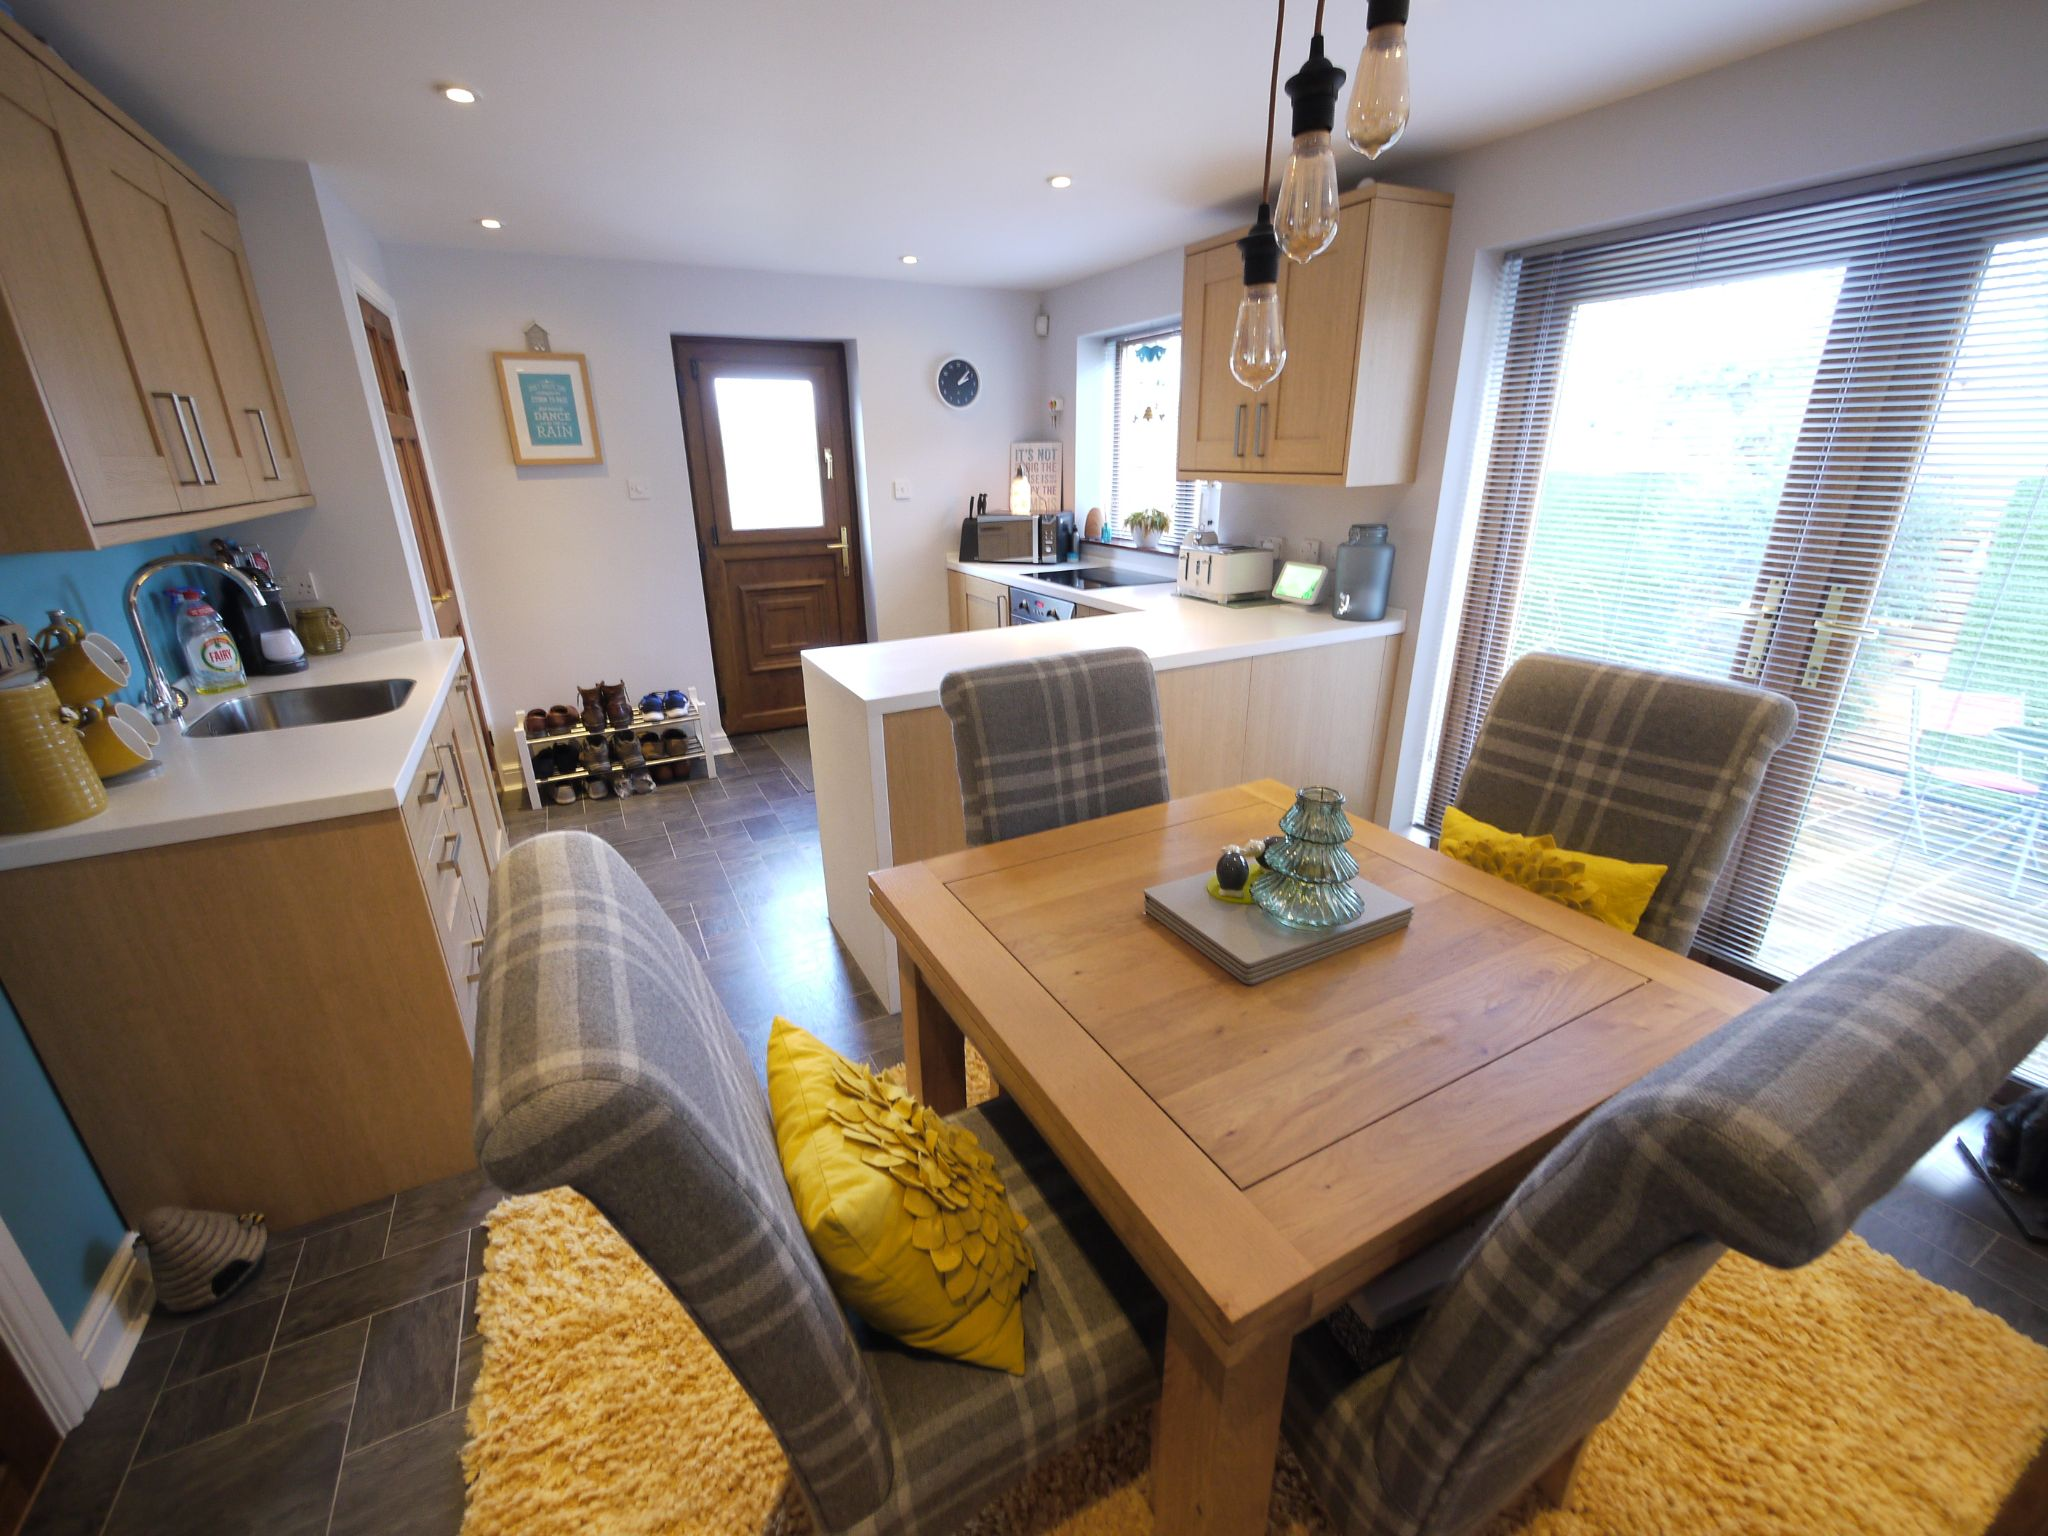 3 bedroom detached house SSTC in Brighouse - Photograph 7.